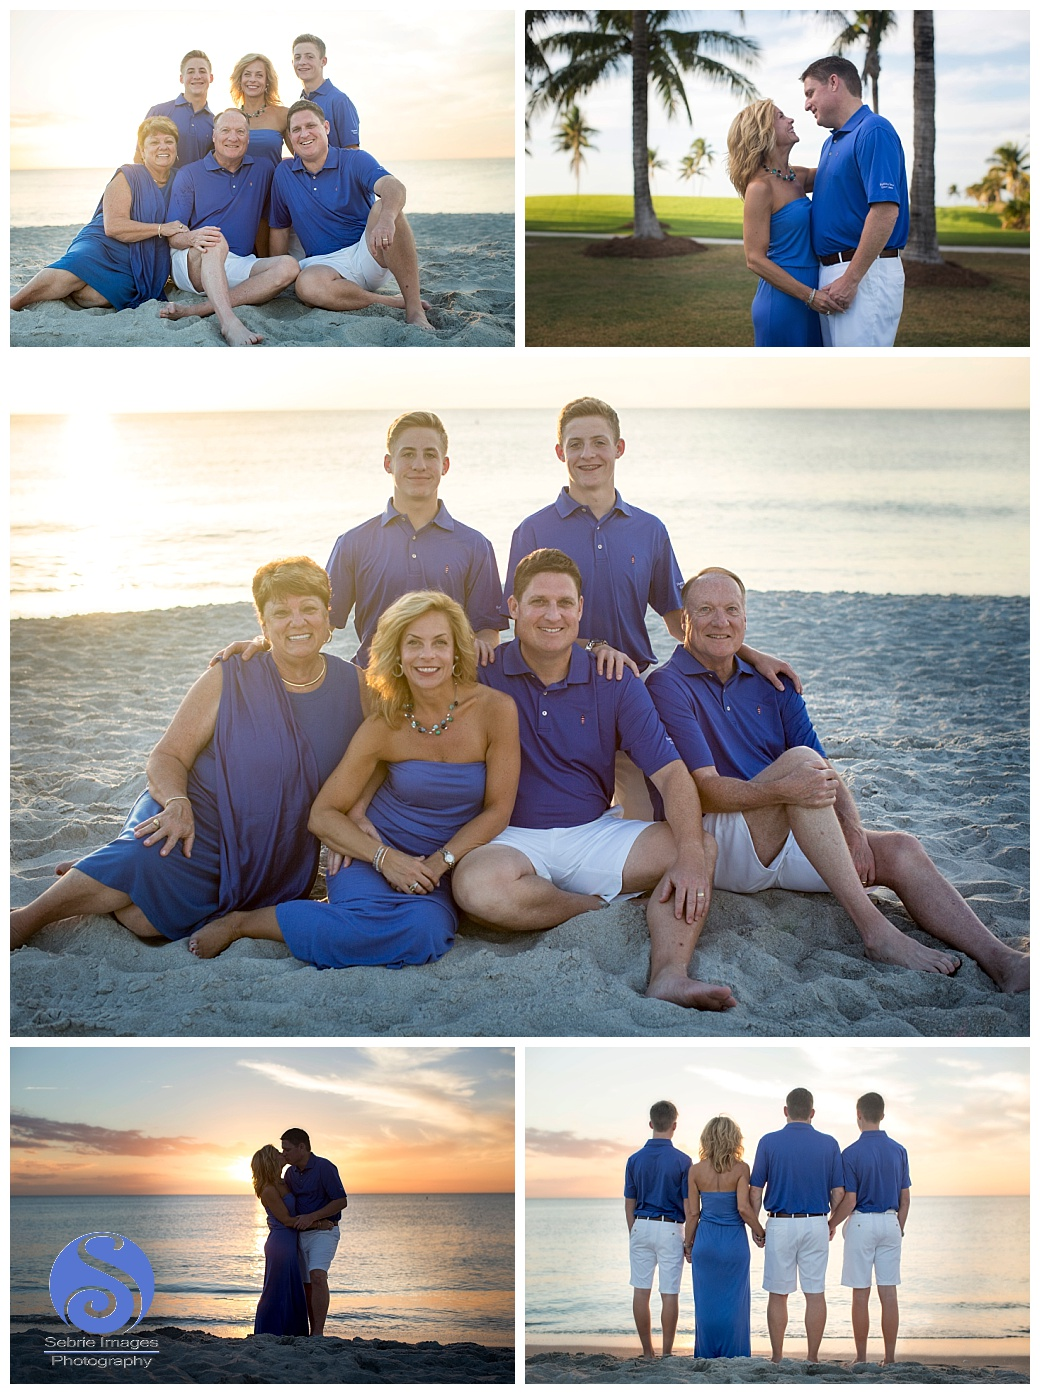 South Seas Island Resort Family Portrait Photography